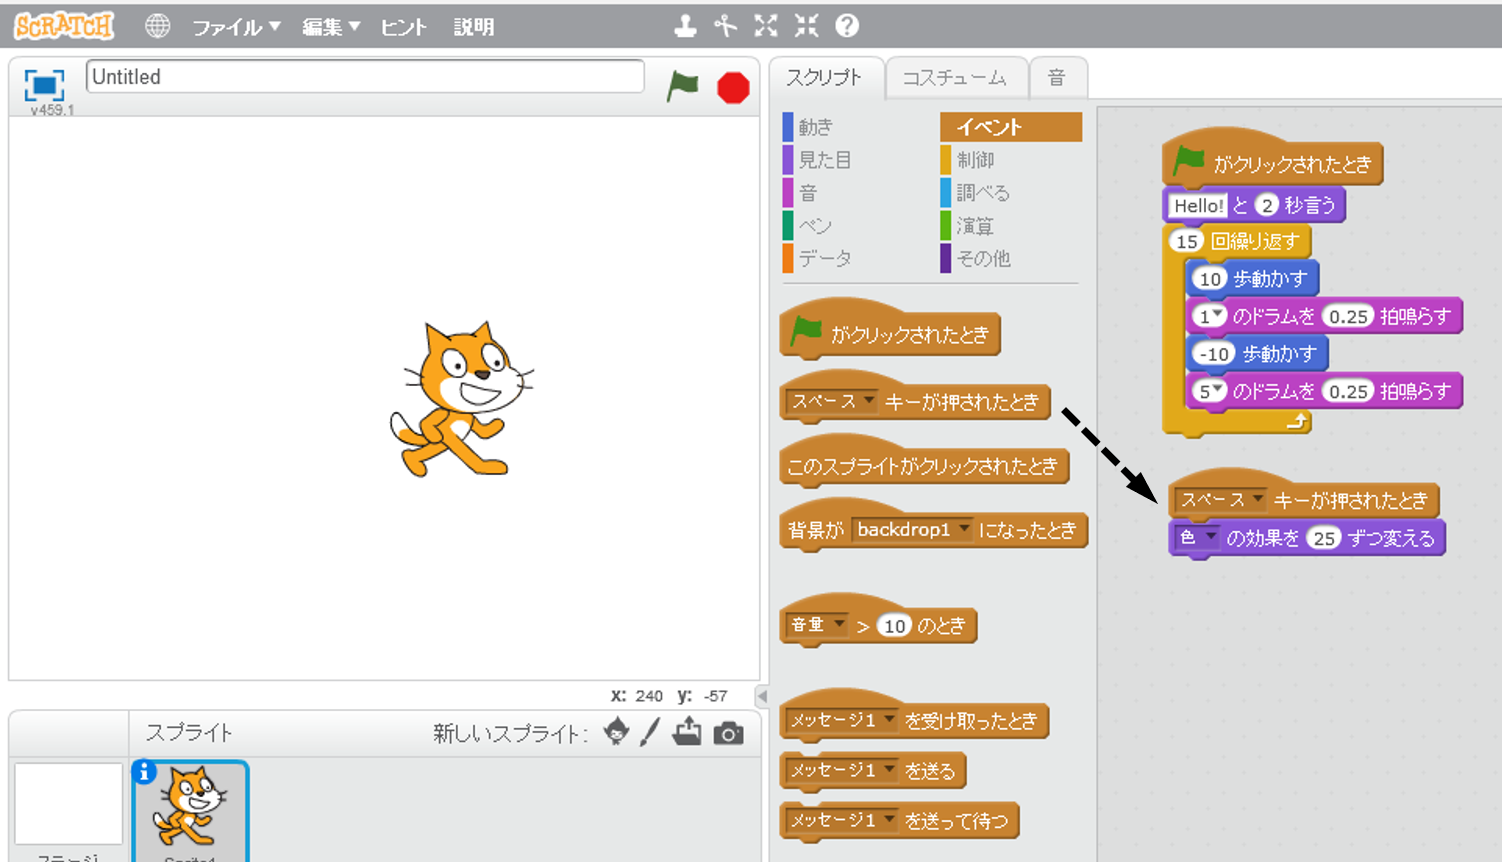 Getting-Started-Guide-Scratch2 図22